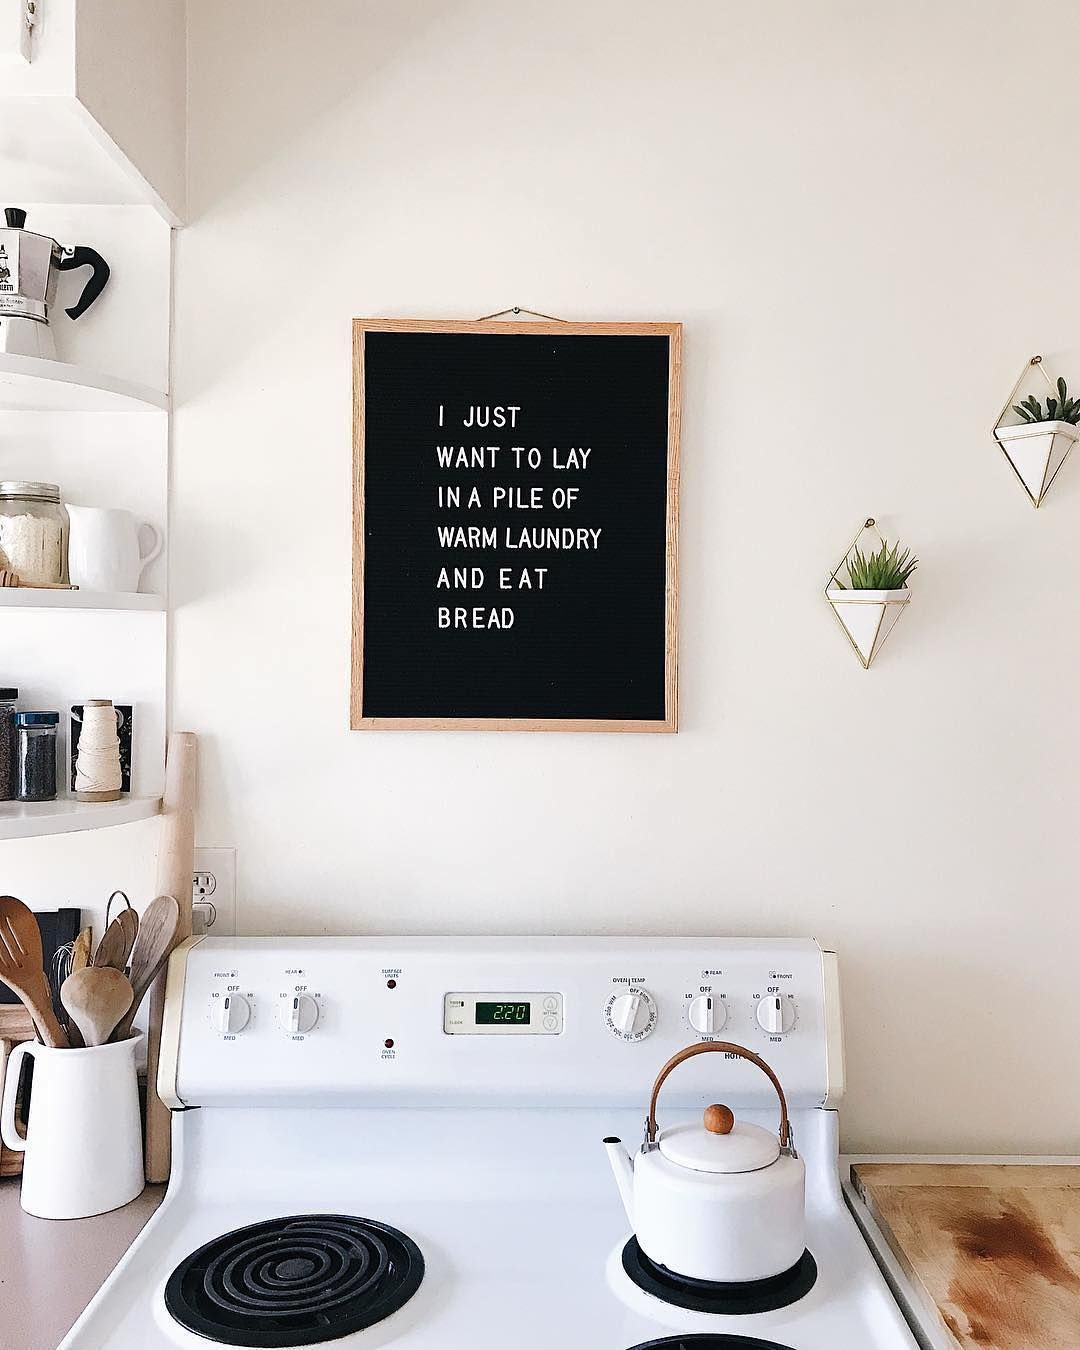 Handcrafted Felt Letter Boards In Europe Inspirational Quotes